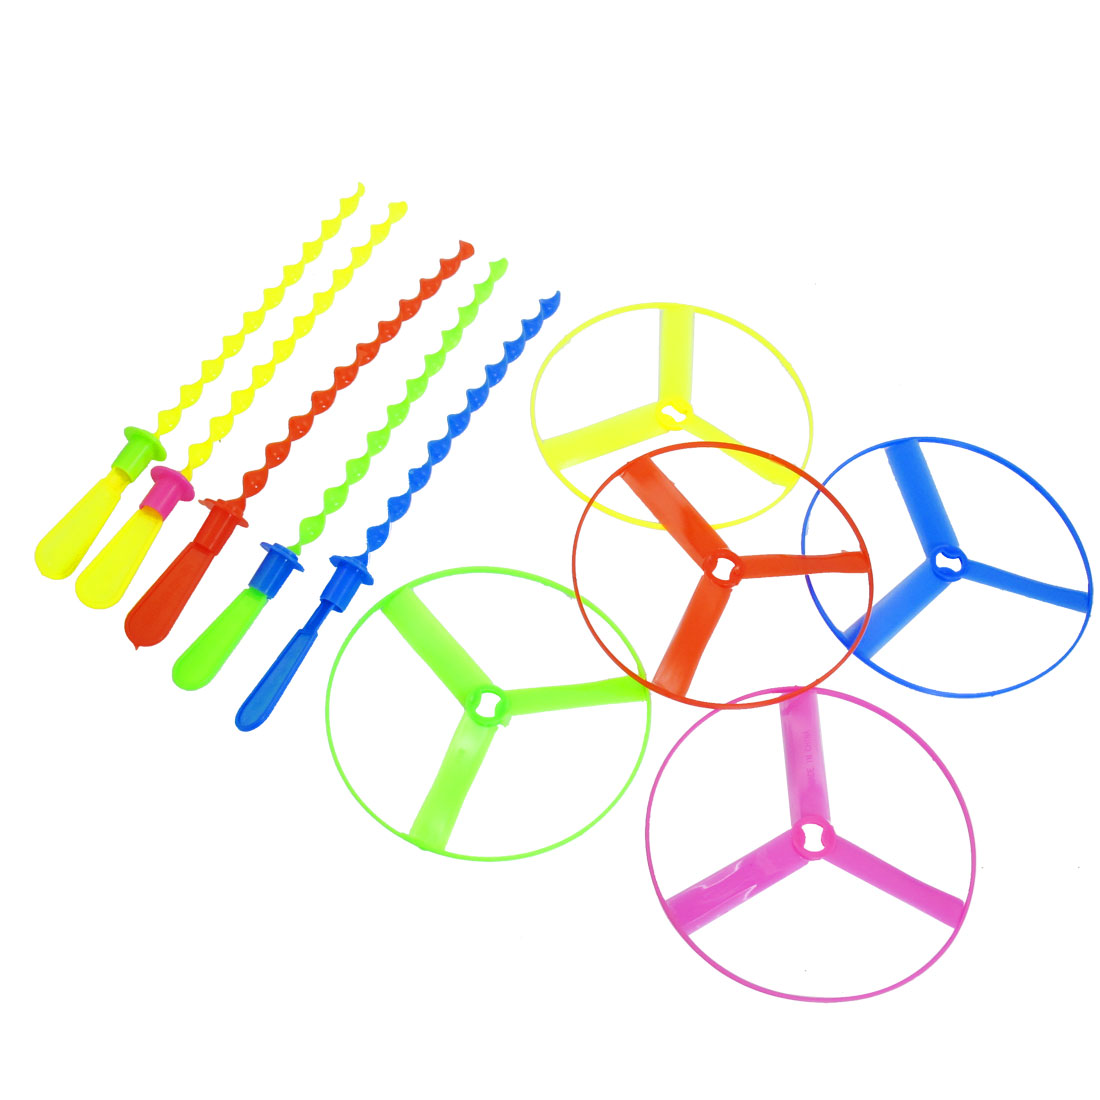 5 Pcs Children Assorted Color Plastic Flying Propeller Top Toys